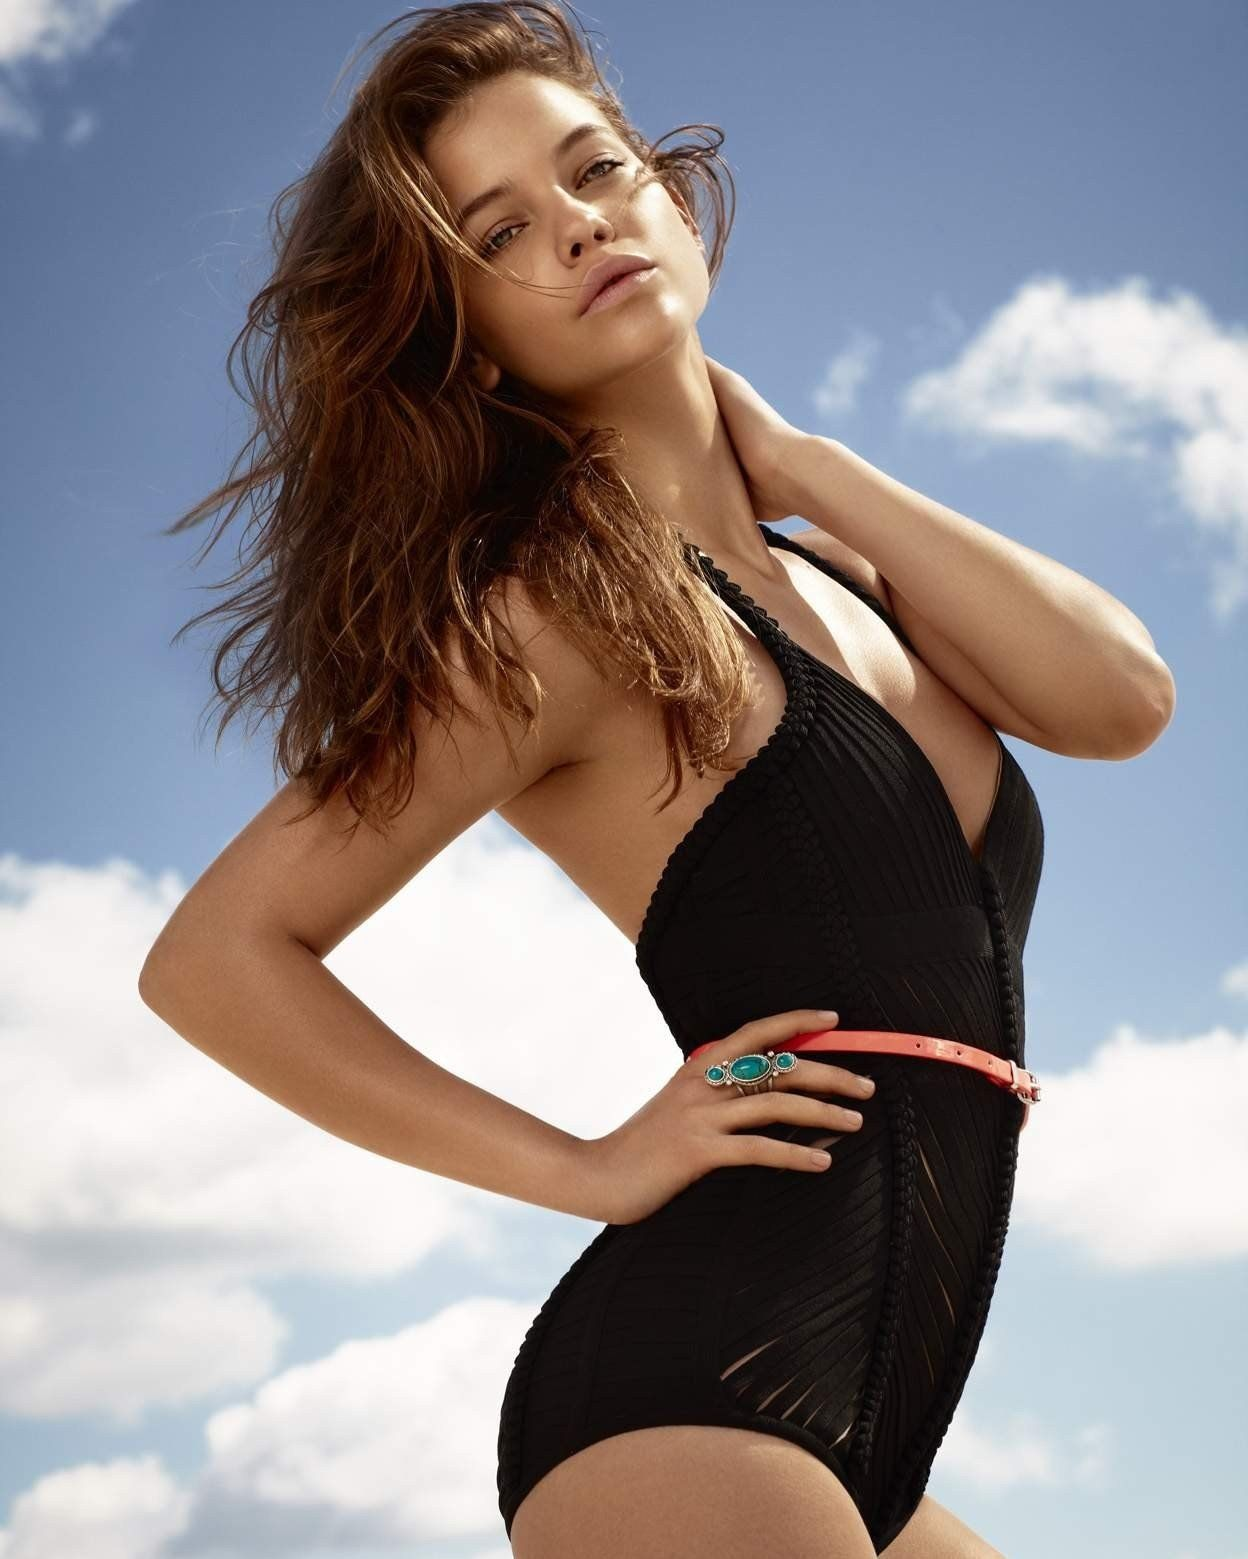 GLOSSY PHOTO PICTURE 8x10 Barbara Palvin With Black